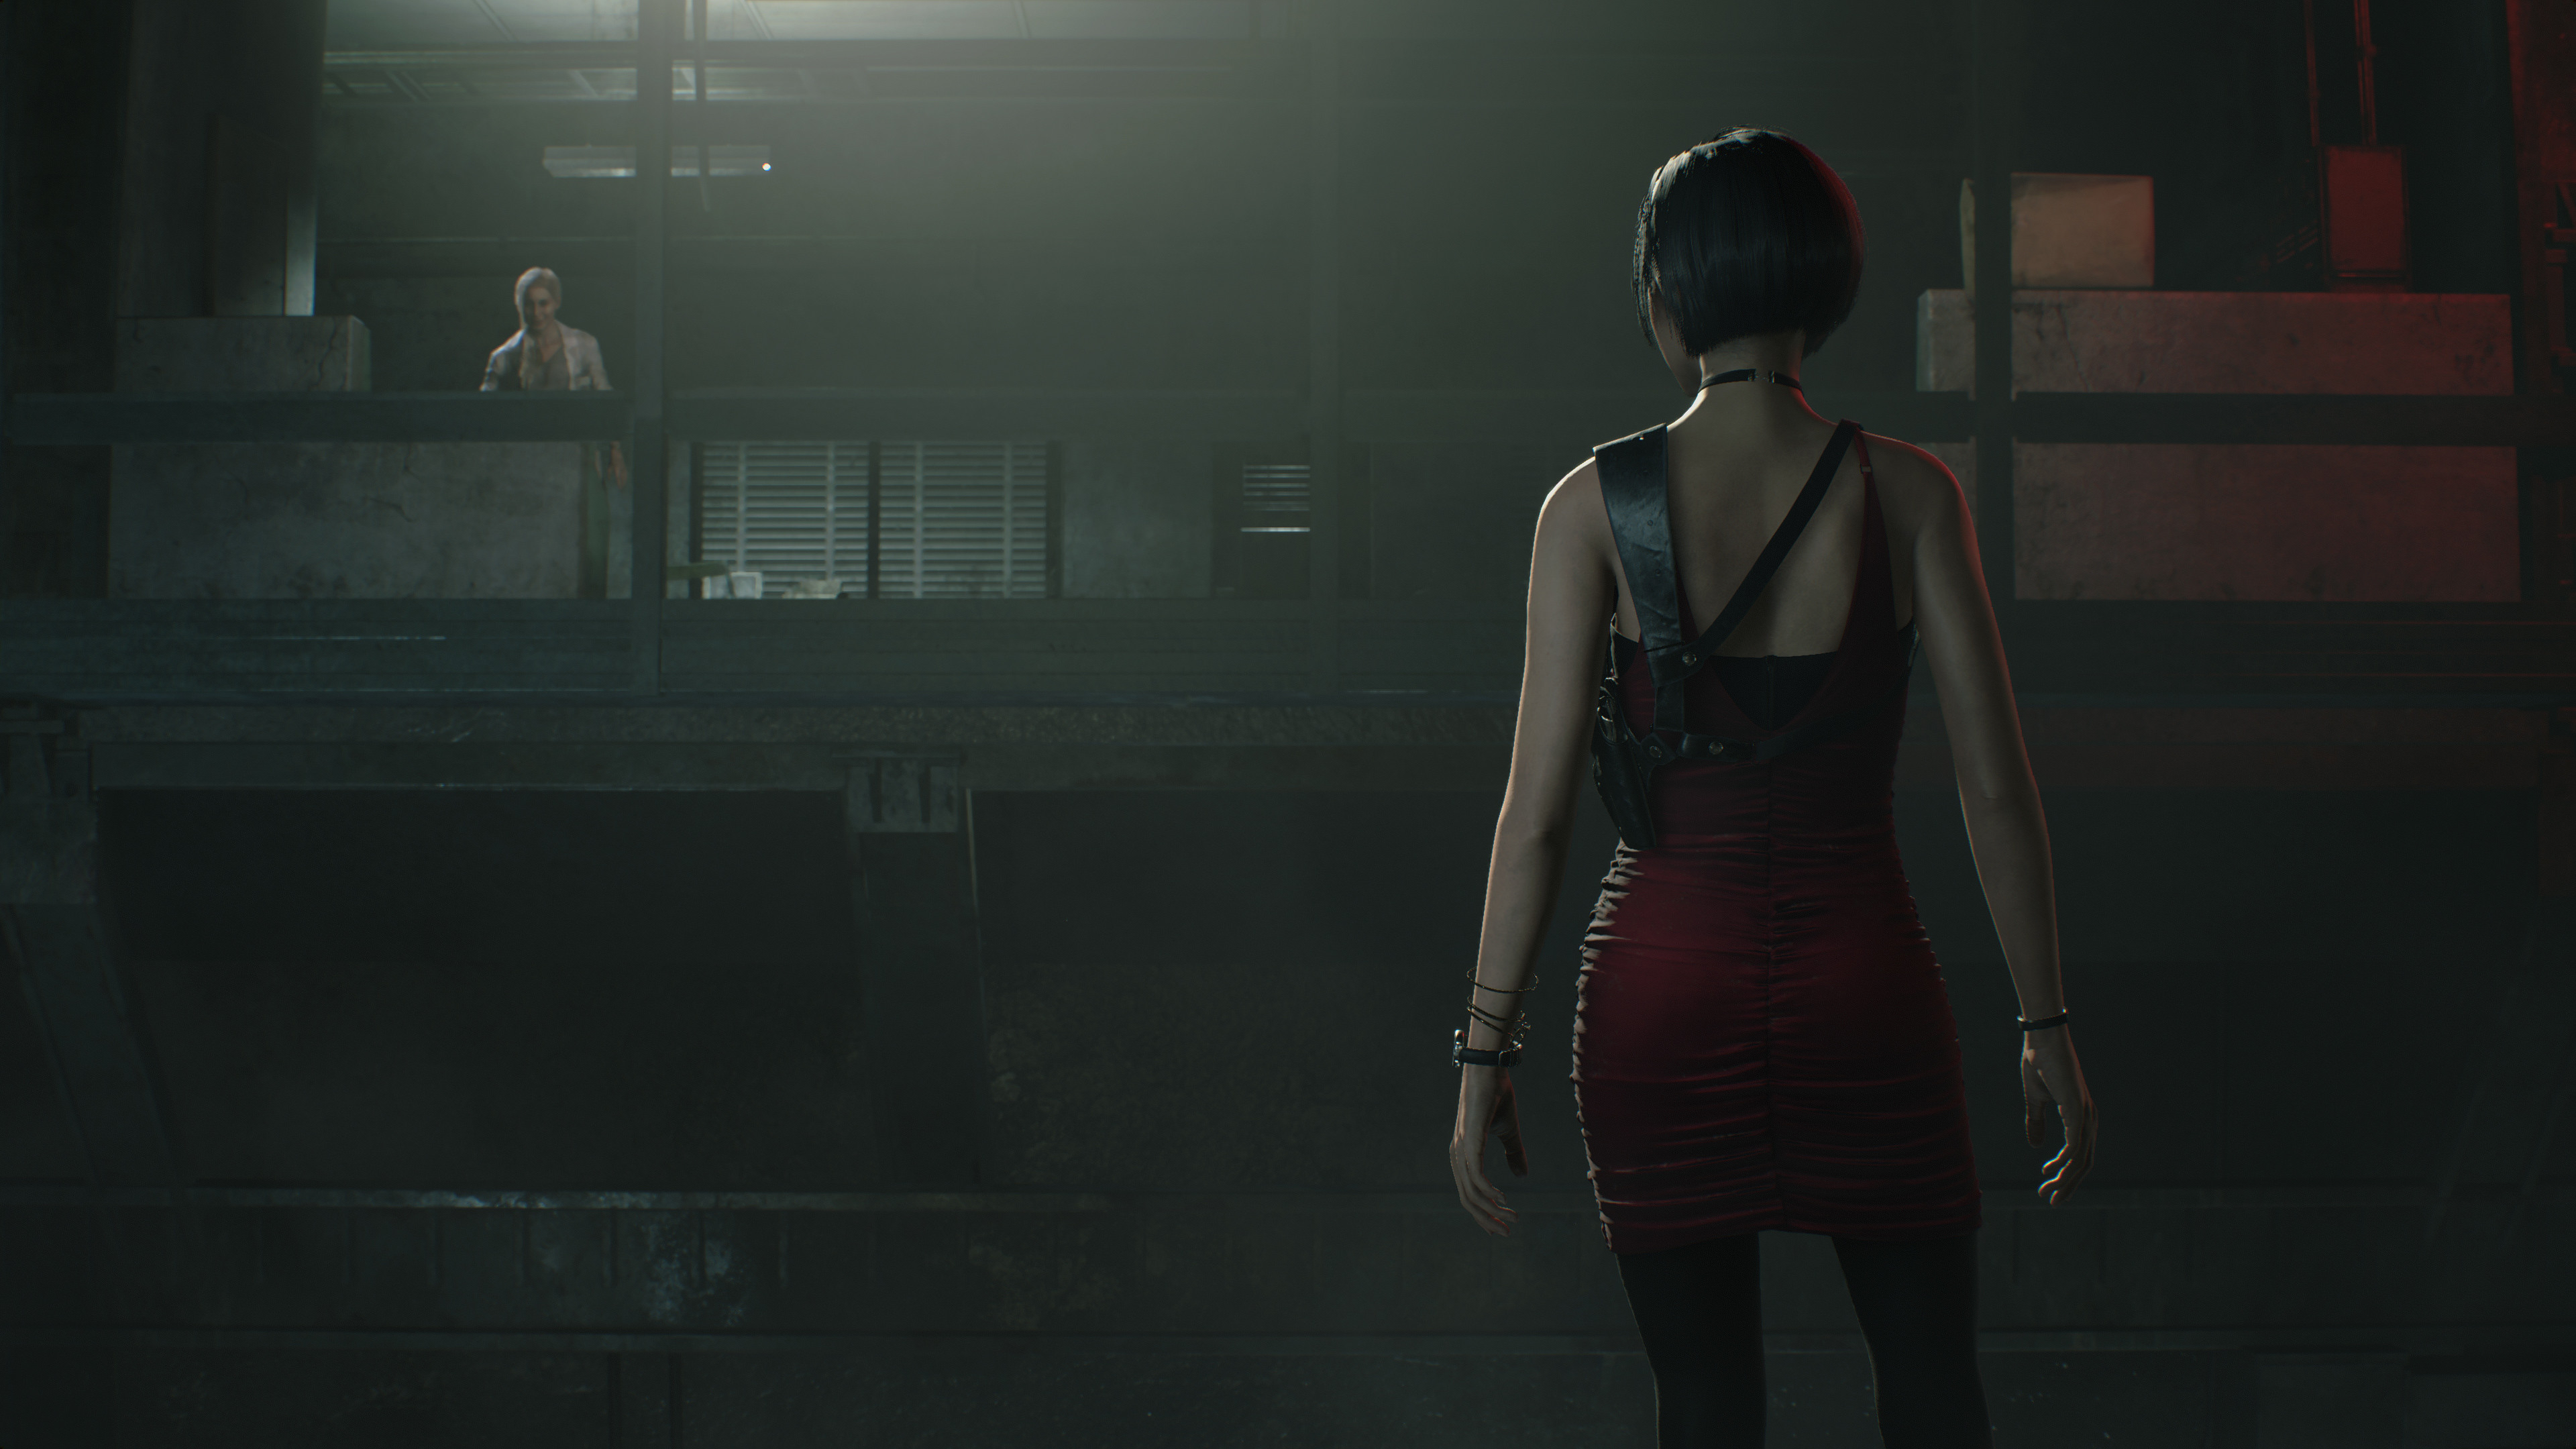 Res: 3840x2160, #claire redfield, #resident evil 2, #games, #hd, #4k JPG 2331 kb